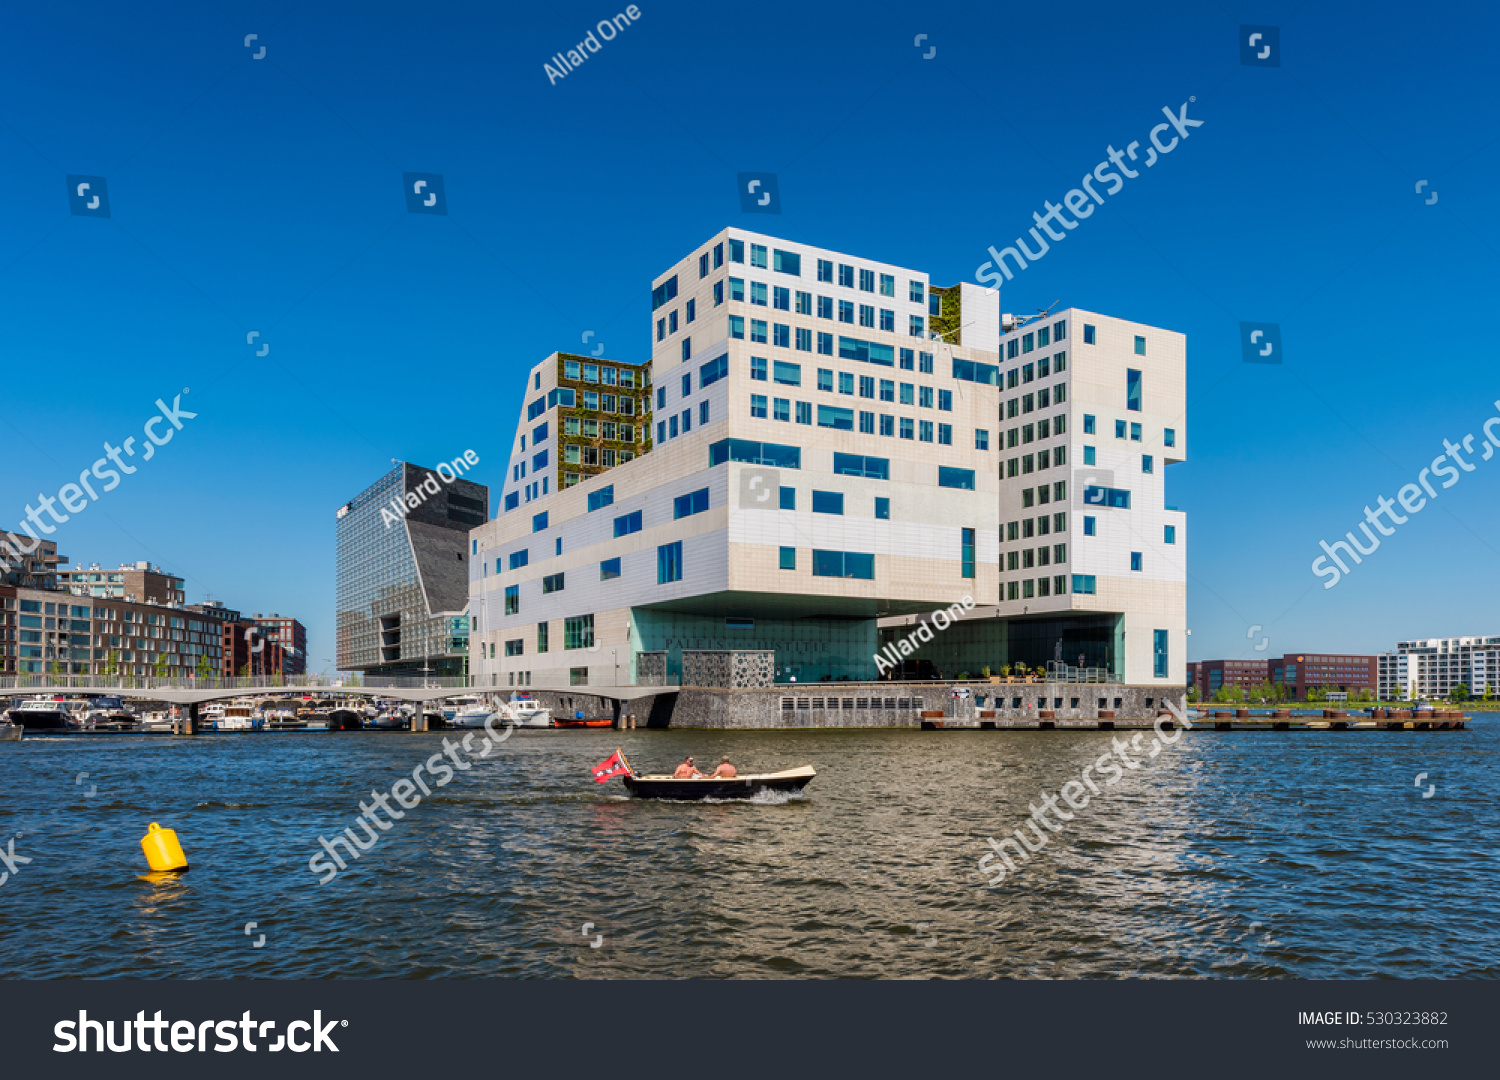 Amsterdam Netherlands May 9 Palace Justice Stock Photo 530323882 Shutterstock